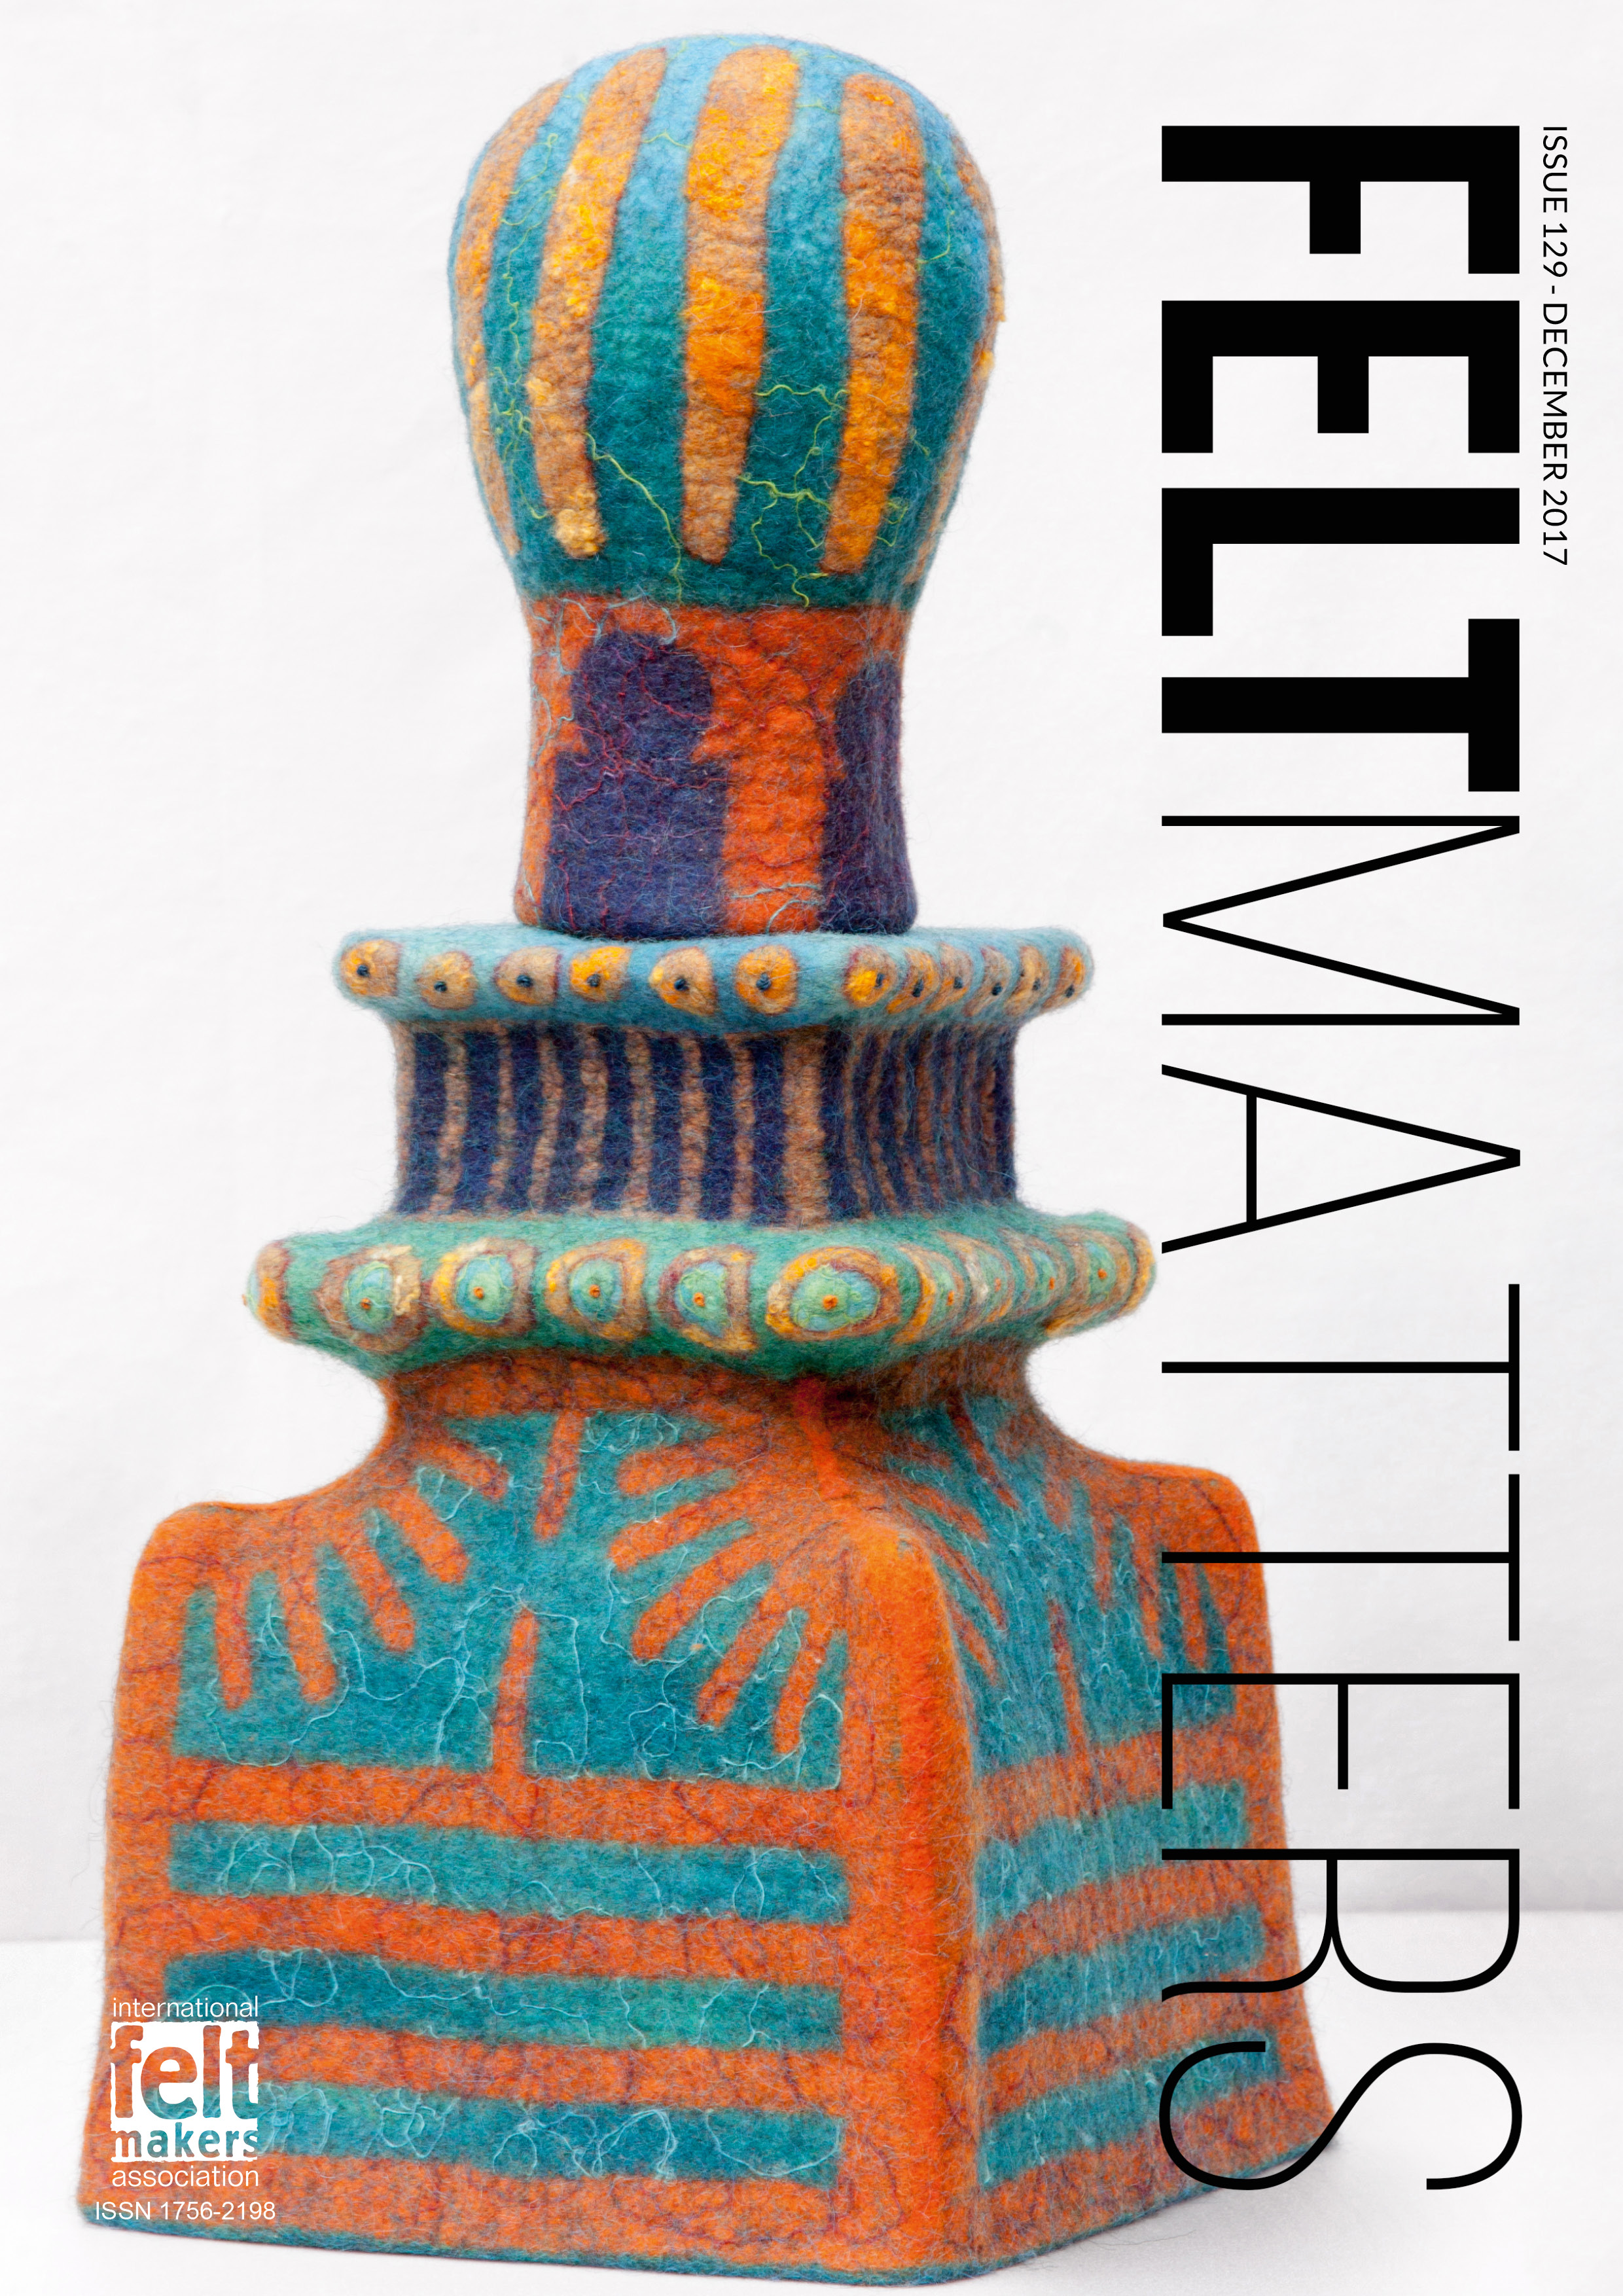 Felt Matters issue 129 Dec 2017 front cover - the Magazine of the International Feltmakers Association